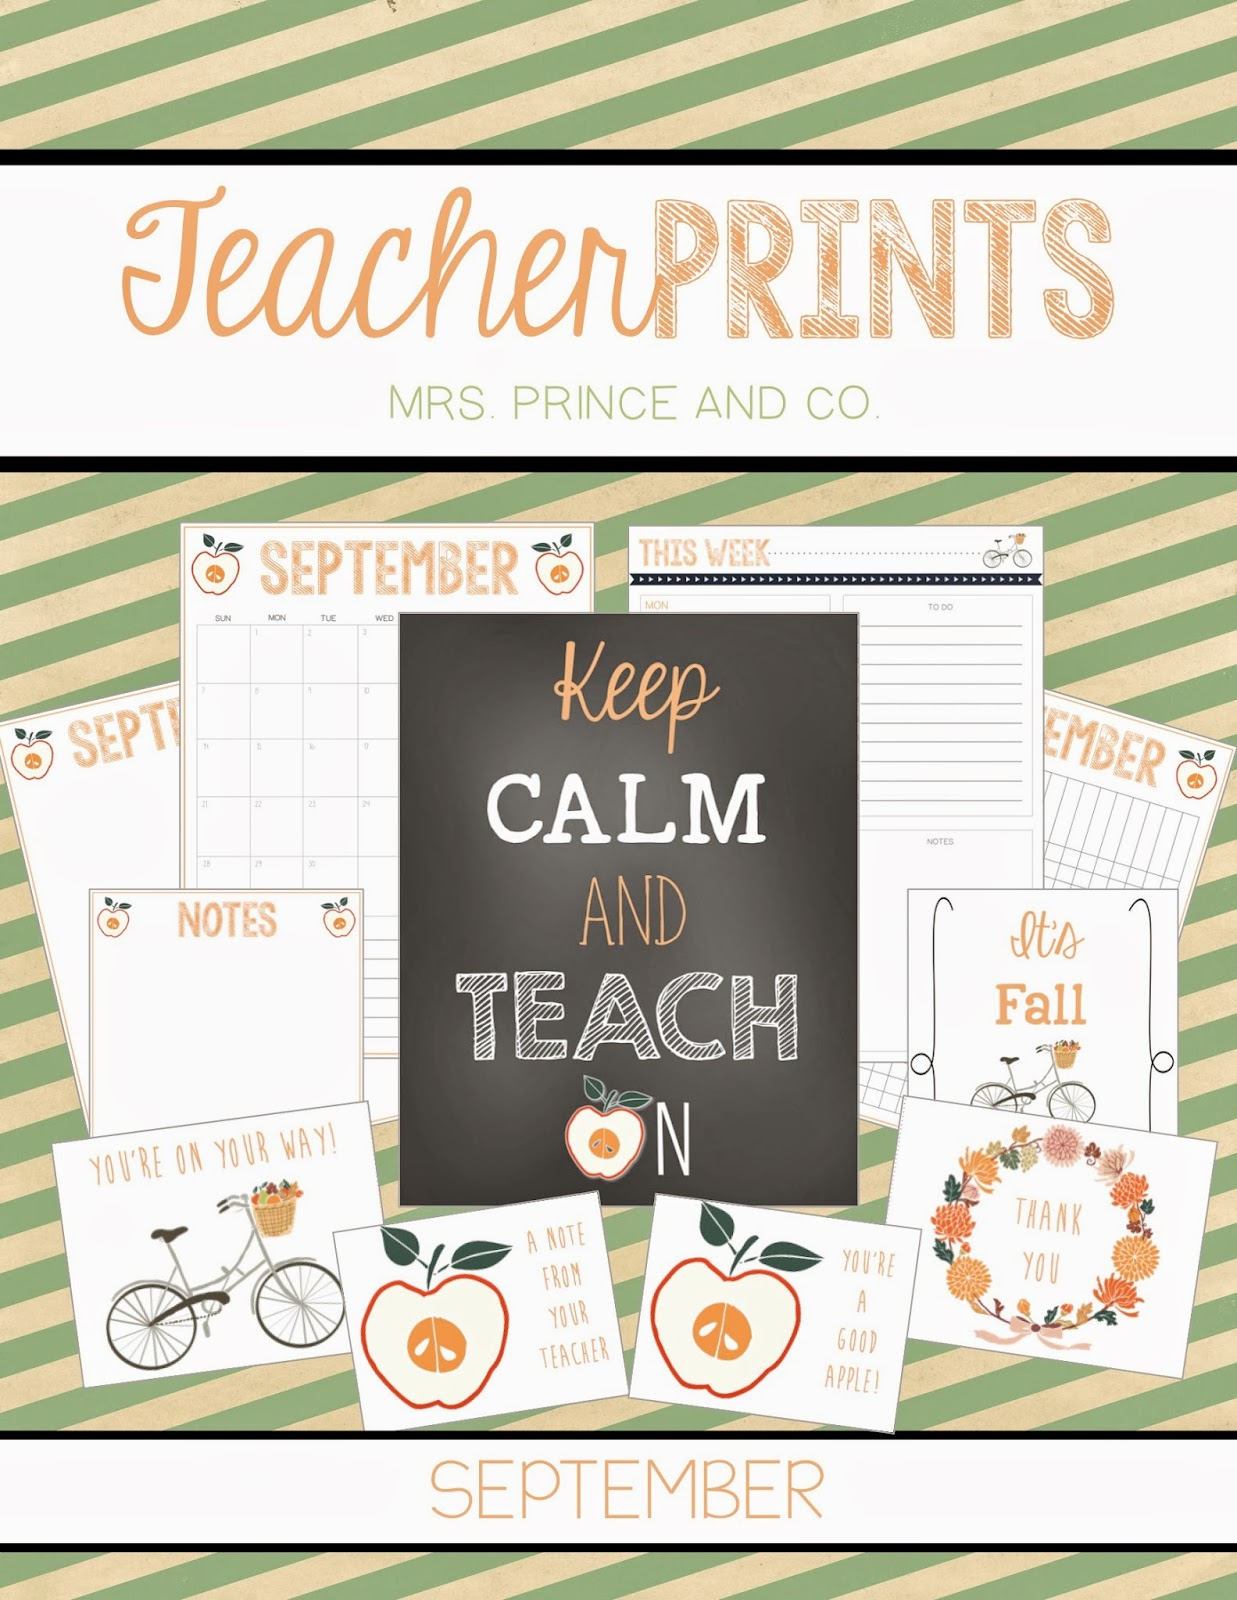 http://www.teacherspayteachers.com/Product/TeacherPRINTS-September-teacher-stationary-and-printables-1415171